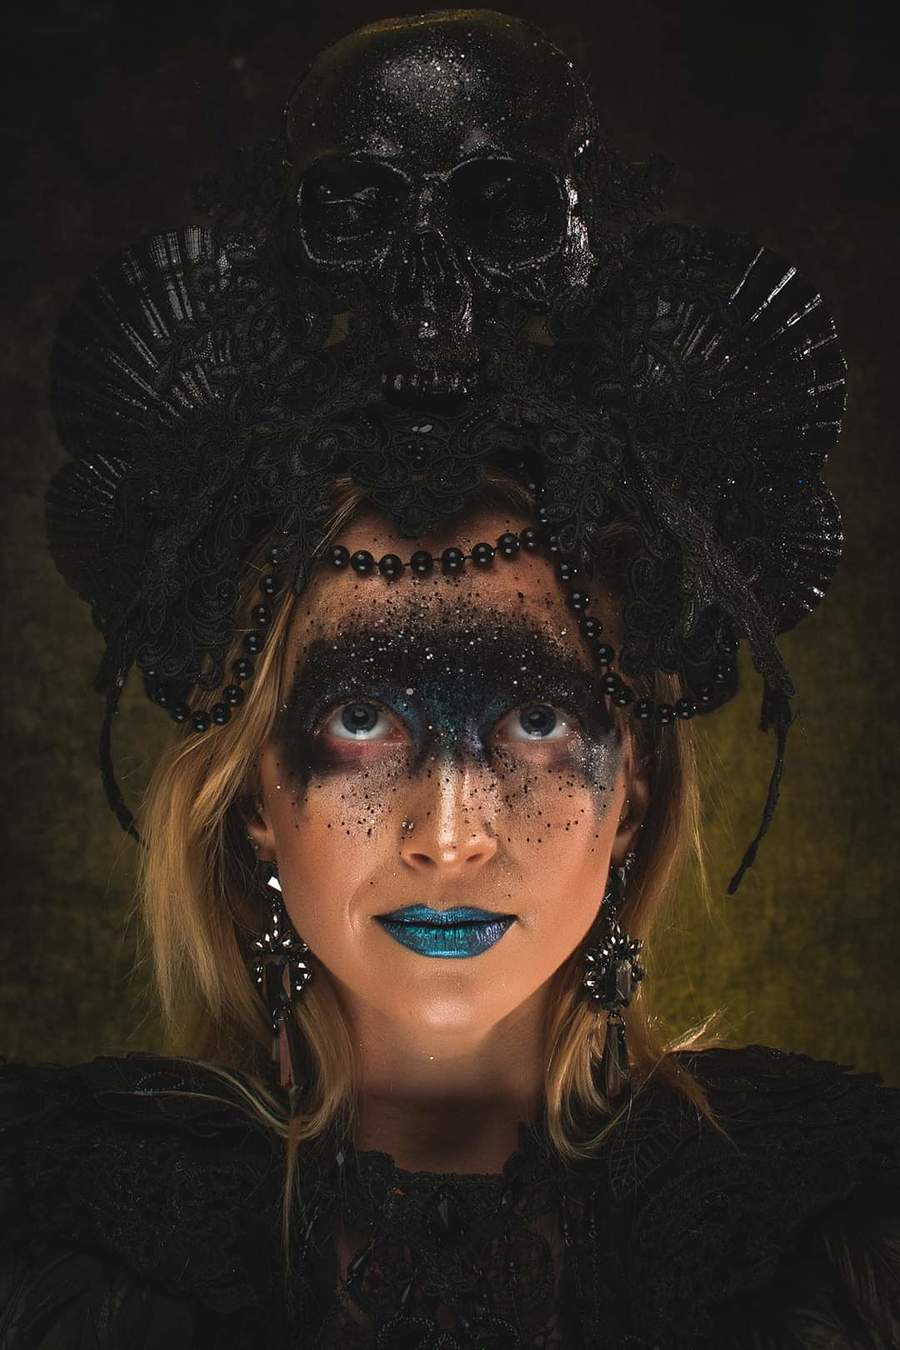 Photography by C-Imagery, Model CJlock, Makeup by Sister Of Sinister, Taken at Rochester Studios, Assisted by Iain Blacklock / Uploaded 31st October 2019 @ 11:39 PM